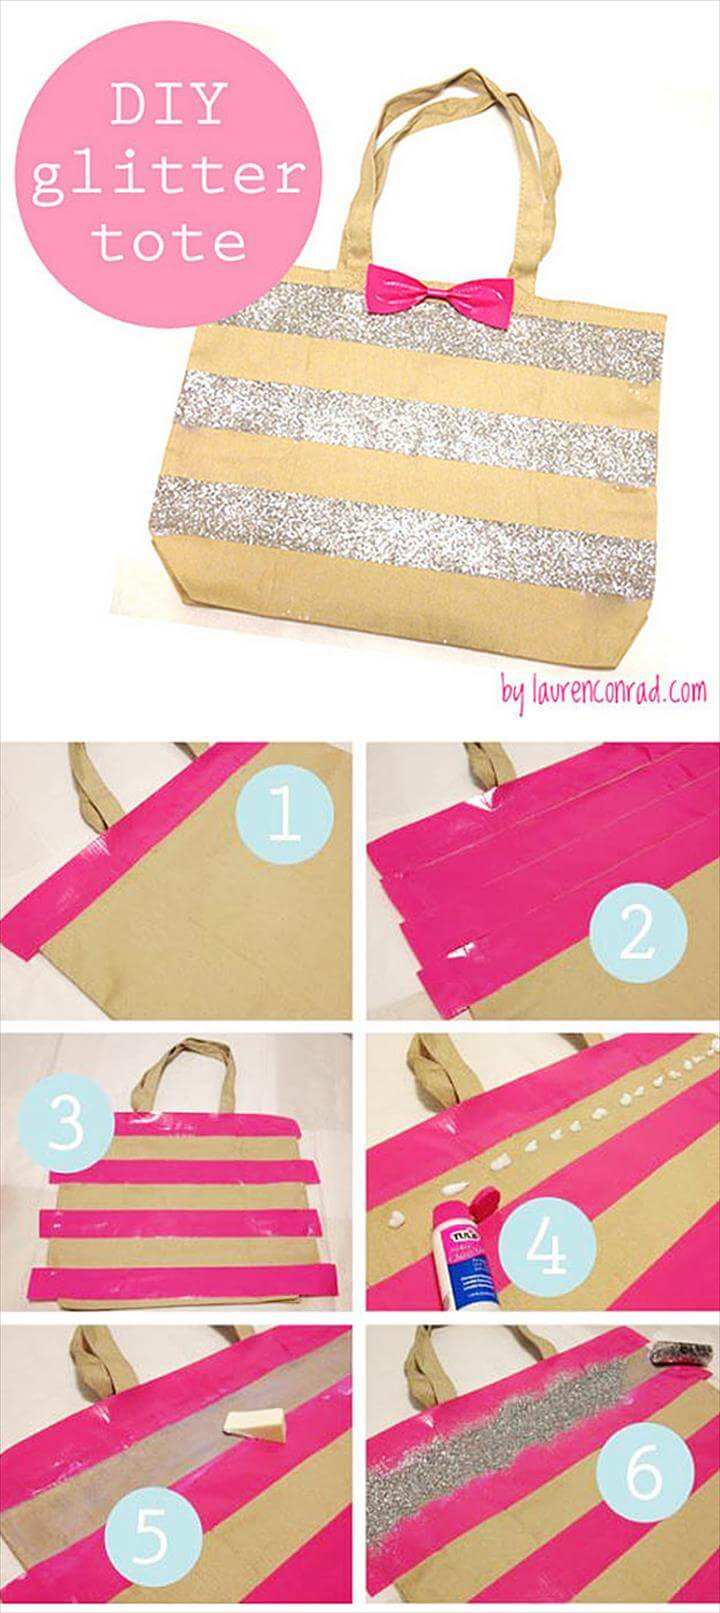 Glitter Projects, Glitter Crafts, Glitter Party, Diy Bags, Diy Gifts, Handmade Gifts, Diy Fashion,, Fun Crafts, Tape Crafts, Cool DIY Crafts Made With Glitter - Sparkly, Creative Projects and Ideas for the Bedroom